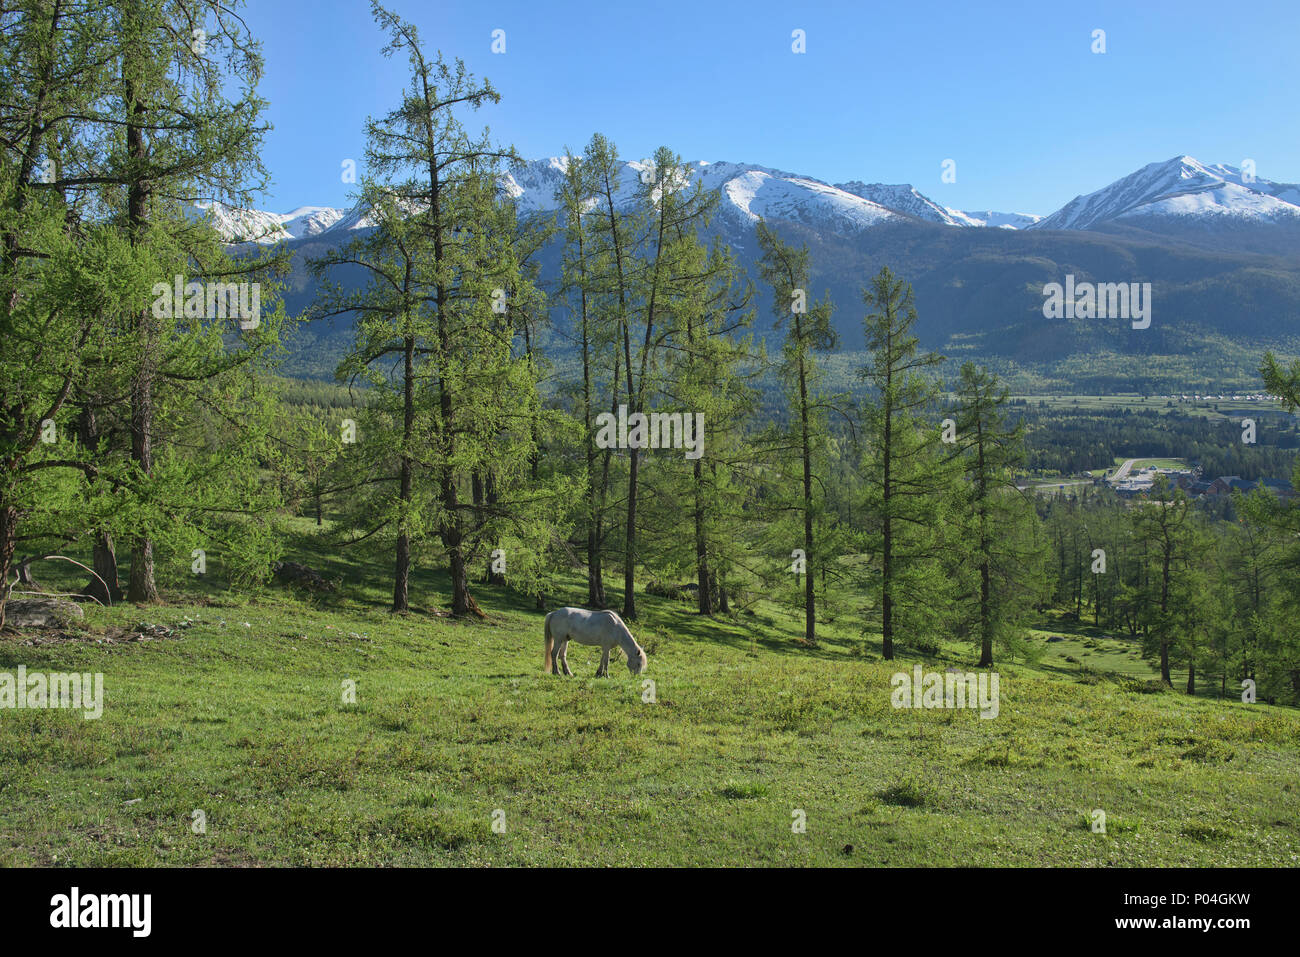 Kazakh white horse at Kanas Lake National Park, Xinjiang, China - Stock Image